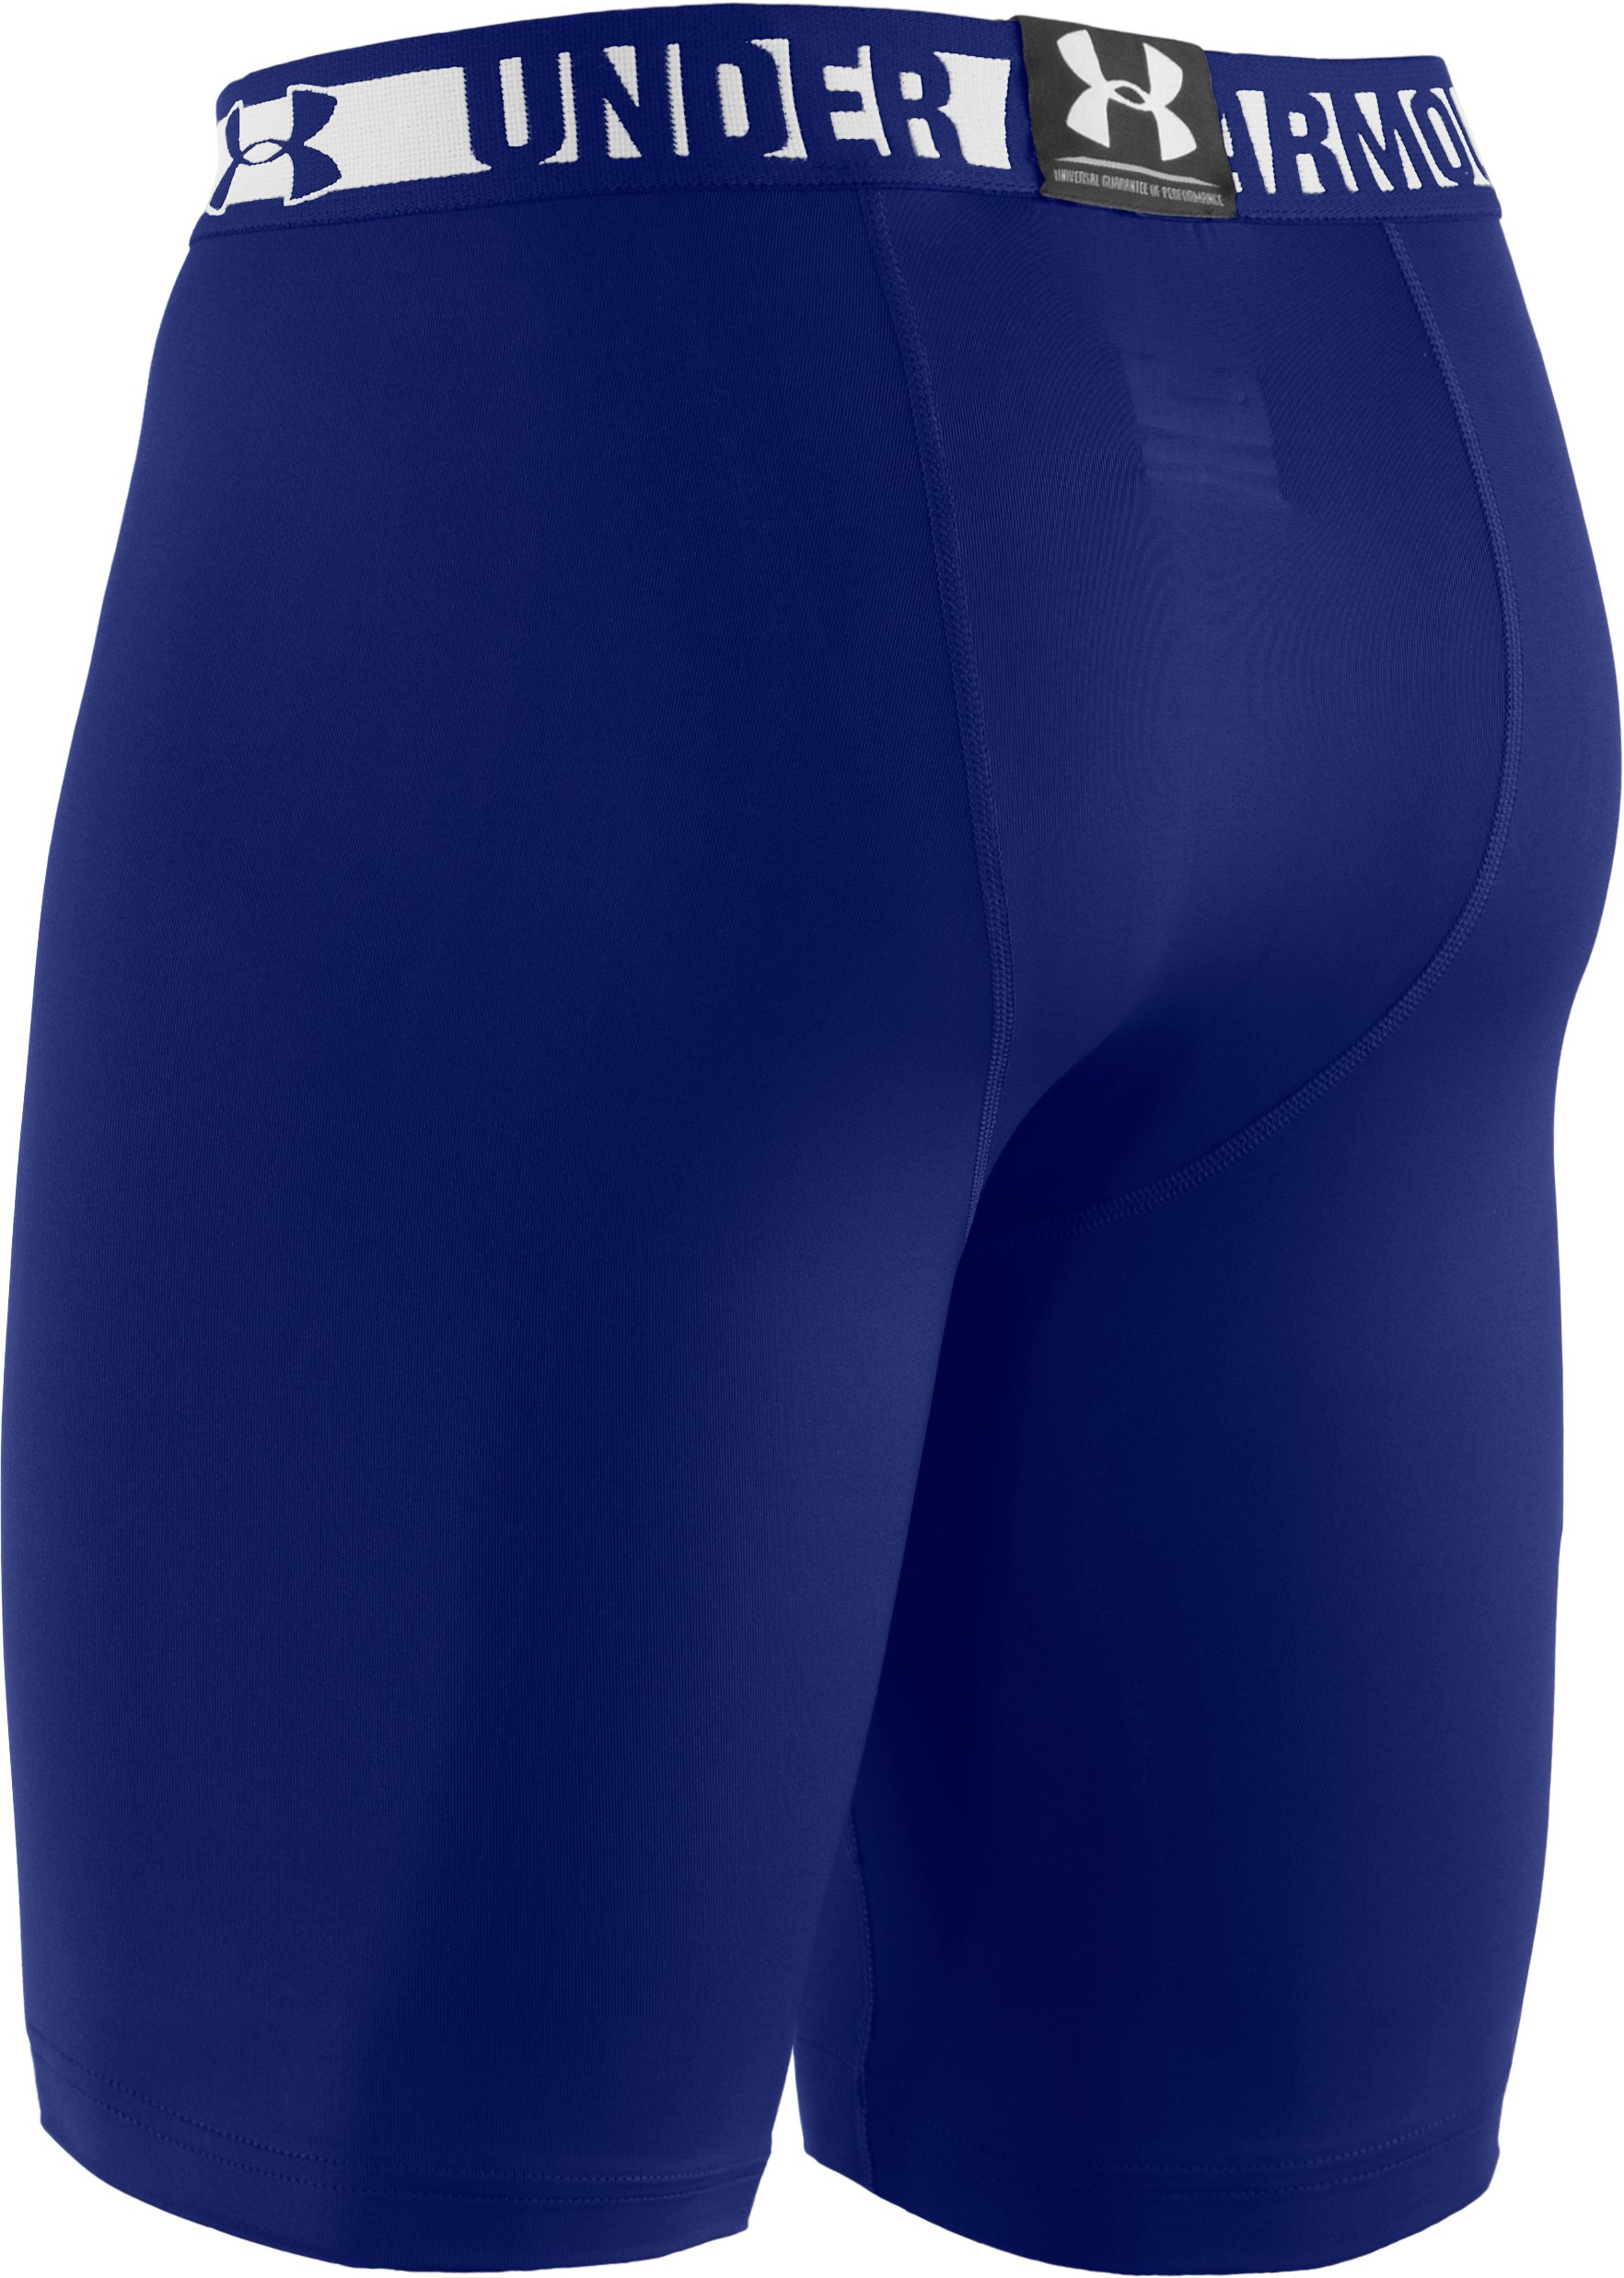 Men's HeatGear® Sonic Compression Shorts, Royal, undefined